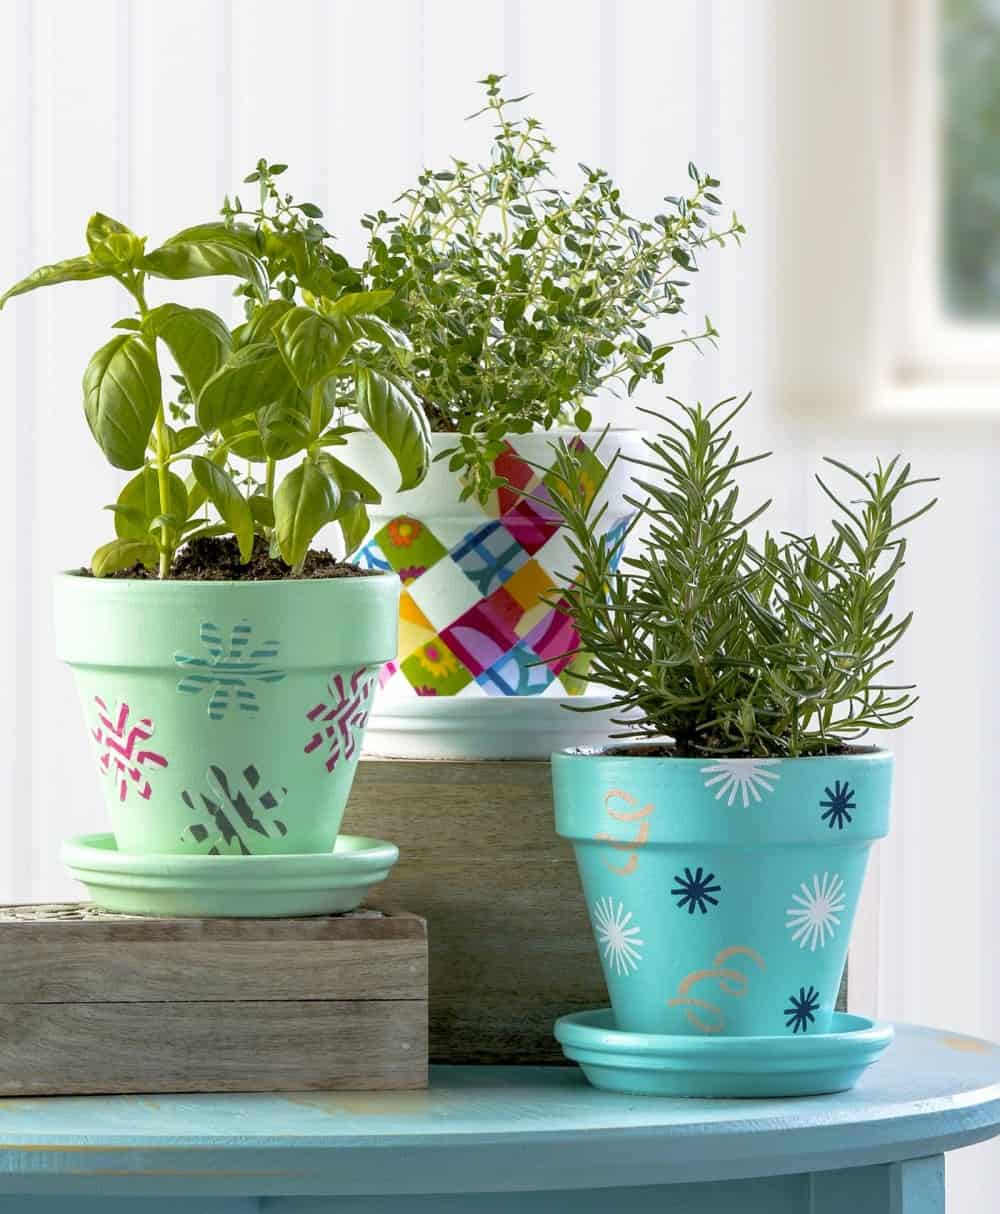 Flower pot decoration using fabric stencils and washi tape & Three Unique Flower Pot Decoration Ideas - Mod Podge Rocks